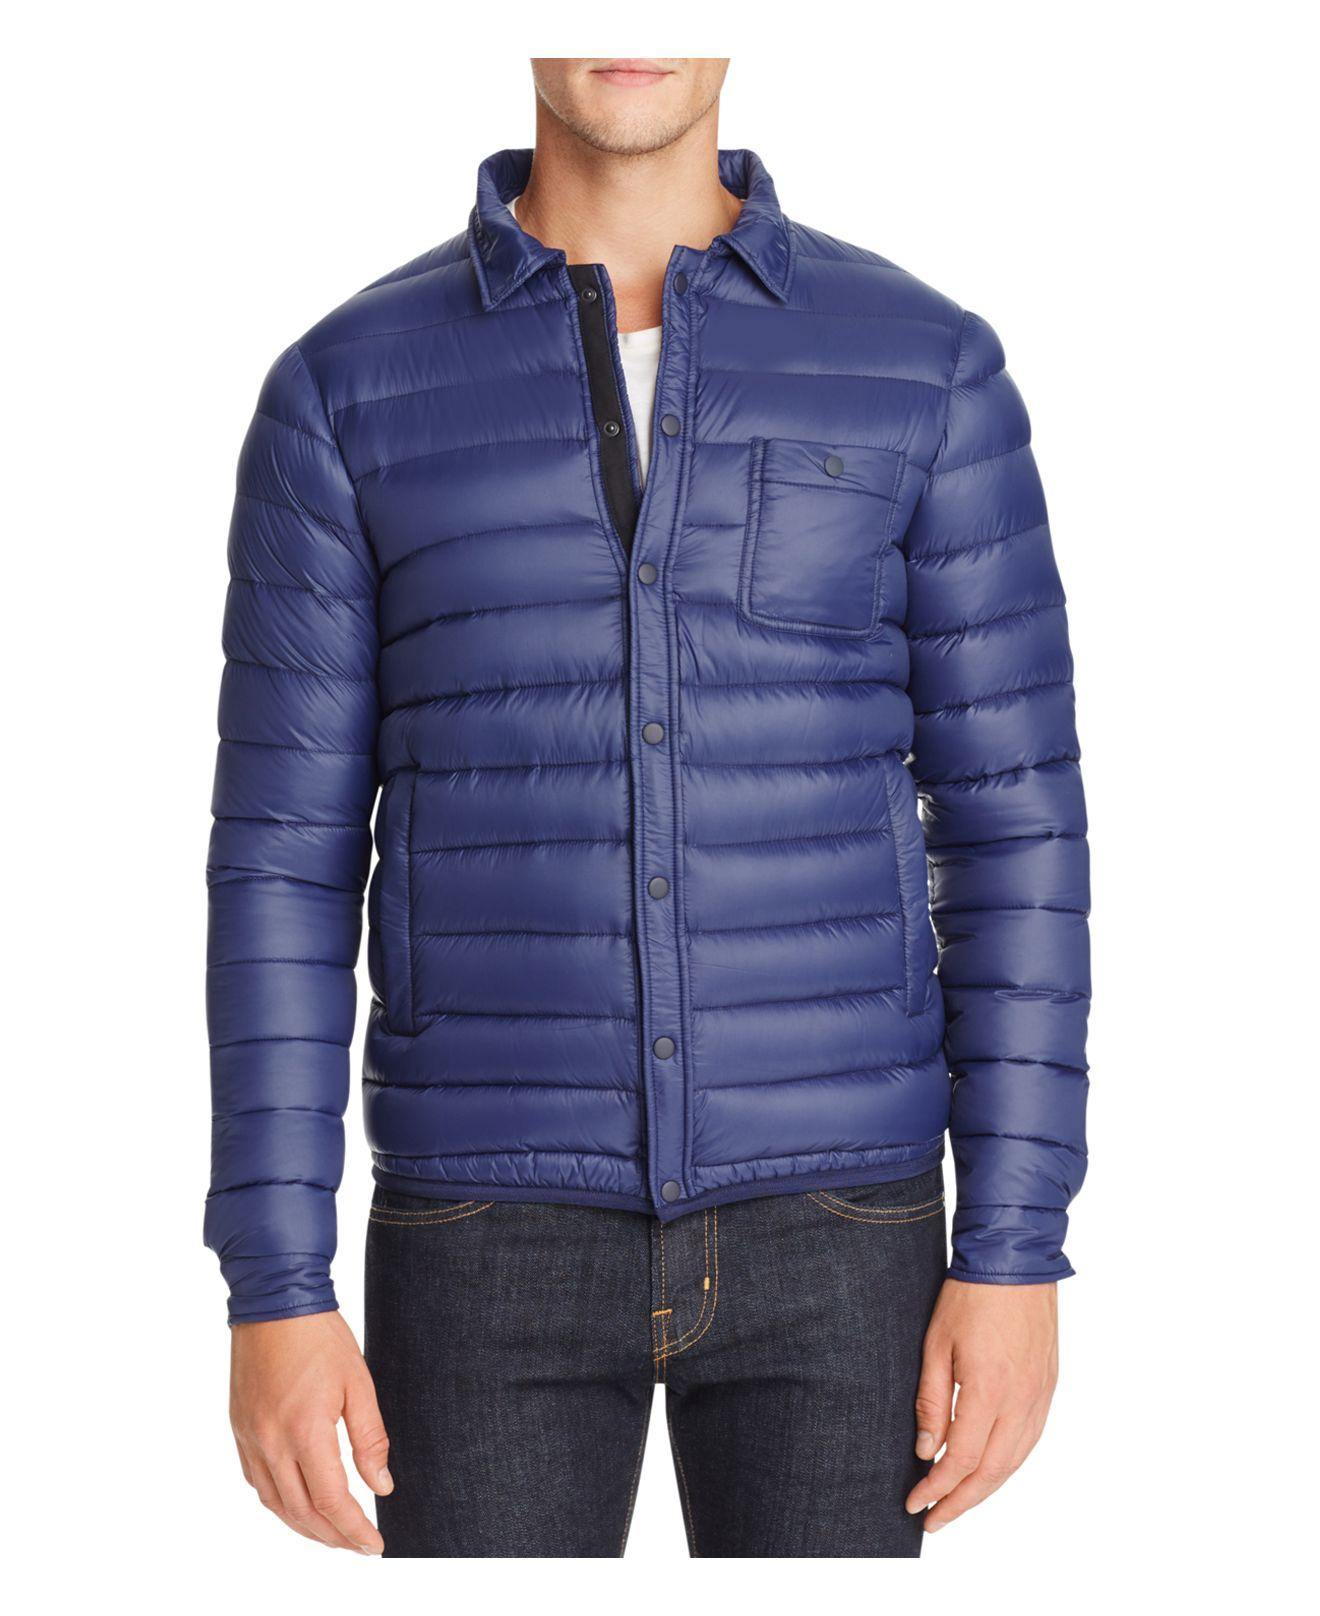 Slate And Stone Clothing : Lyst slate stone quilted down jacket in blue for men